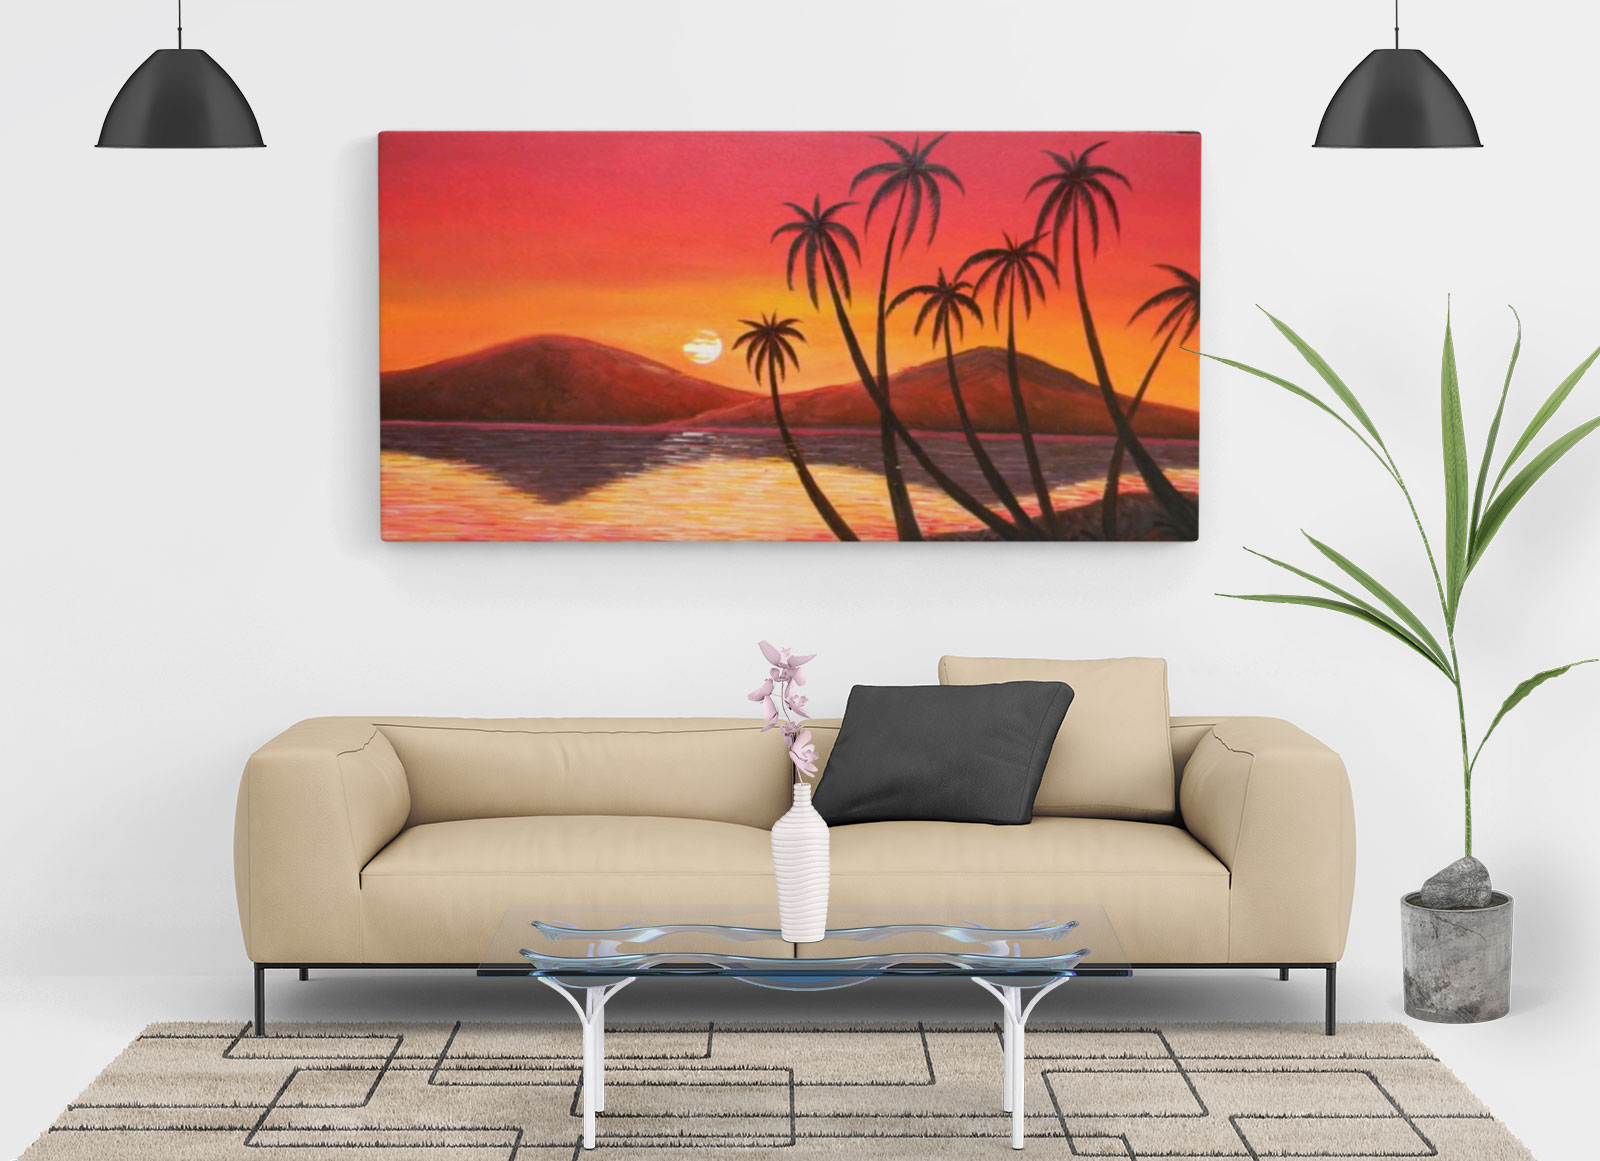 Free-Living-Room-Painting-Wall-Canvas-Mockup-PSD